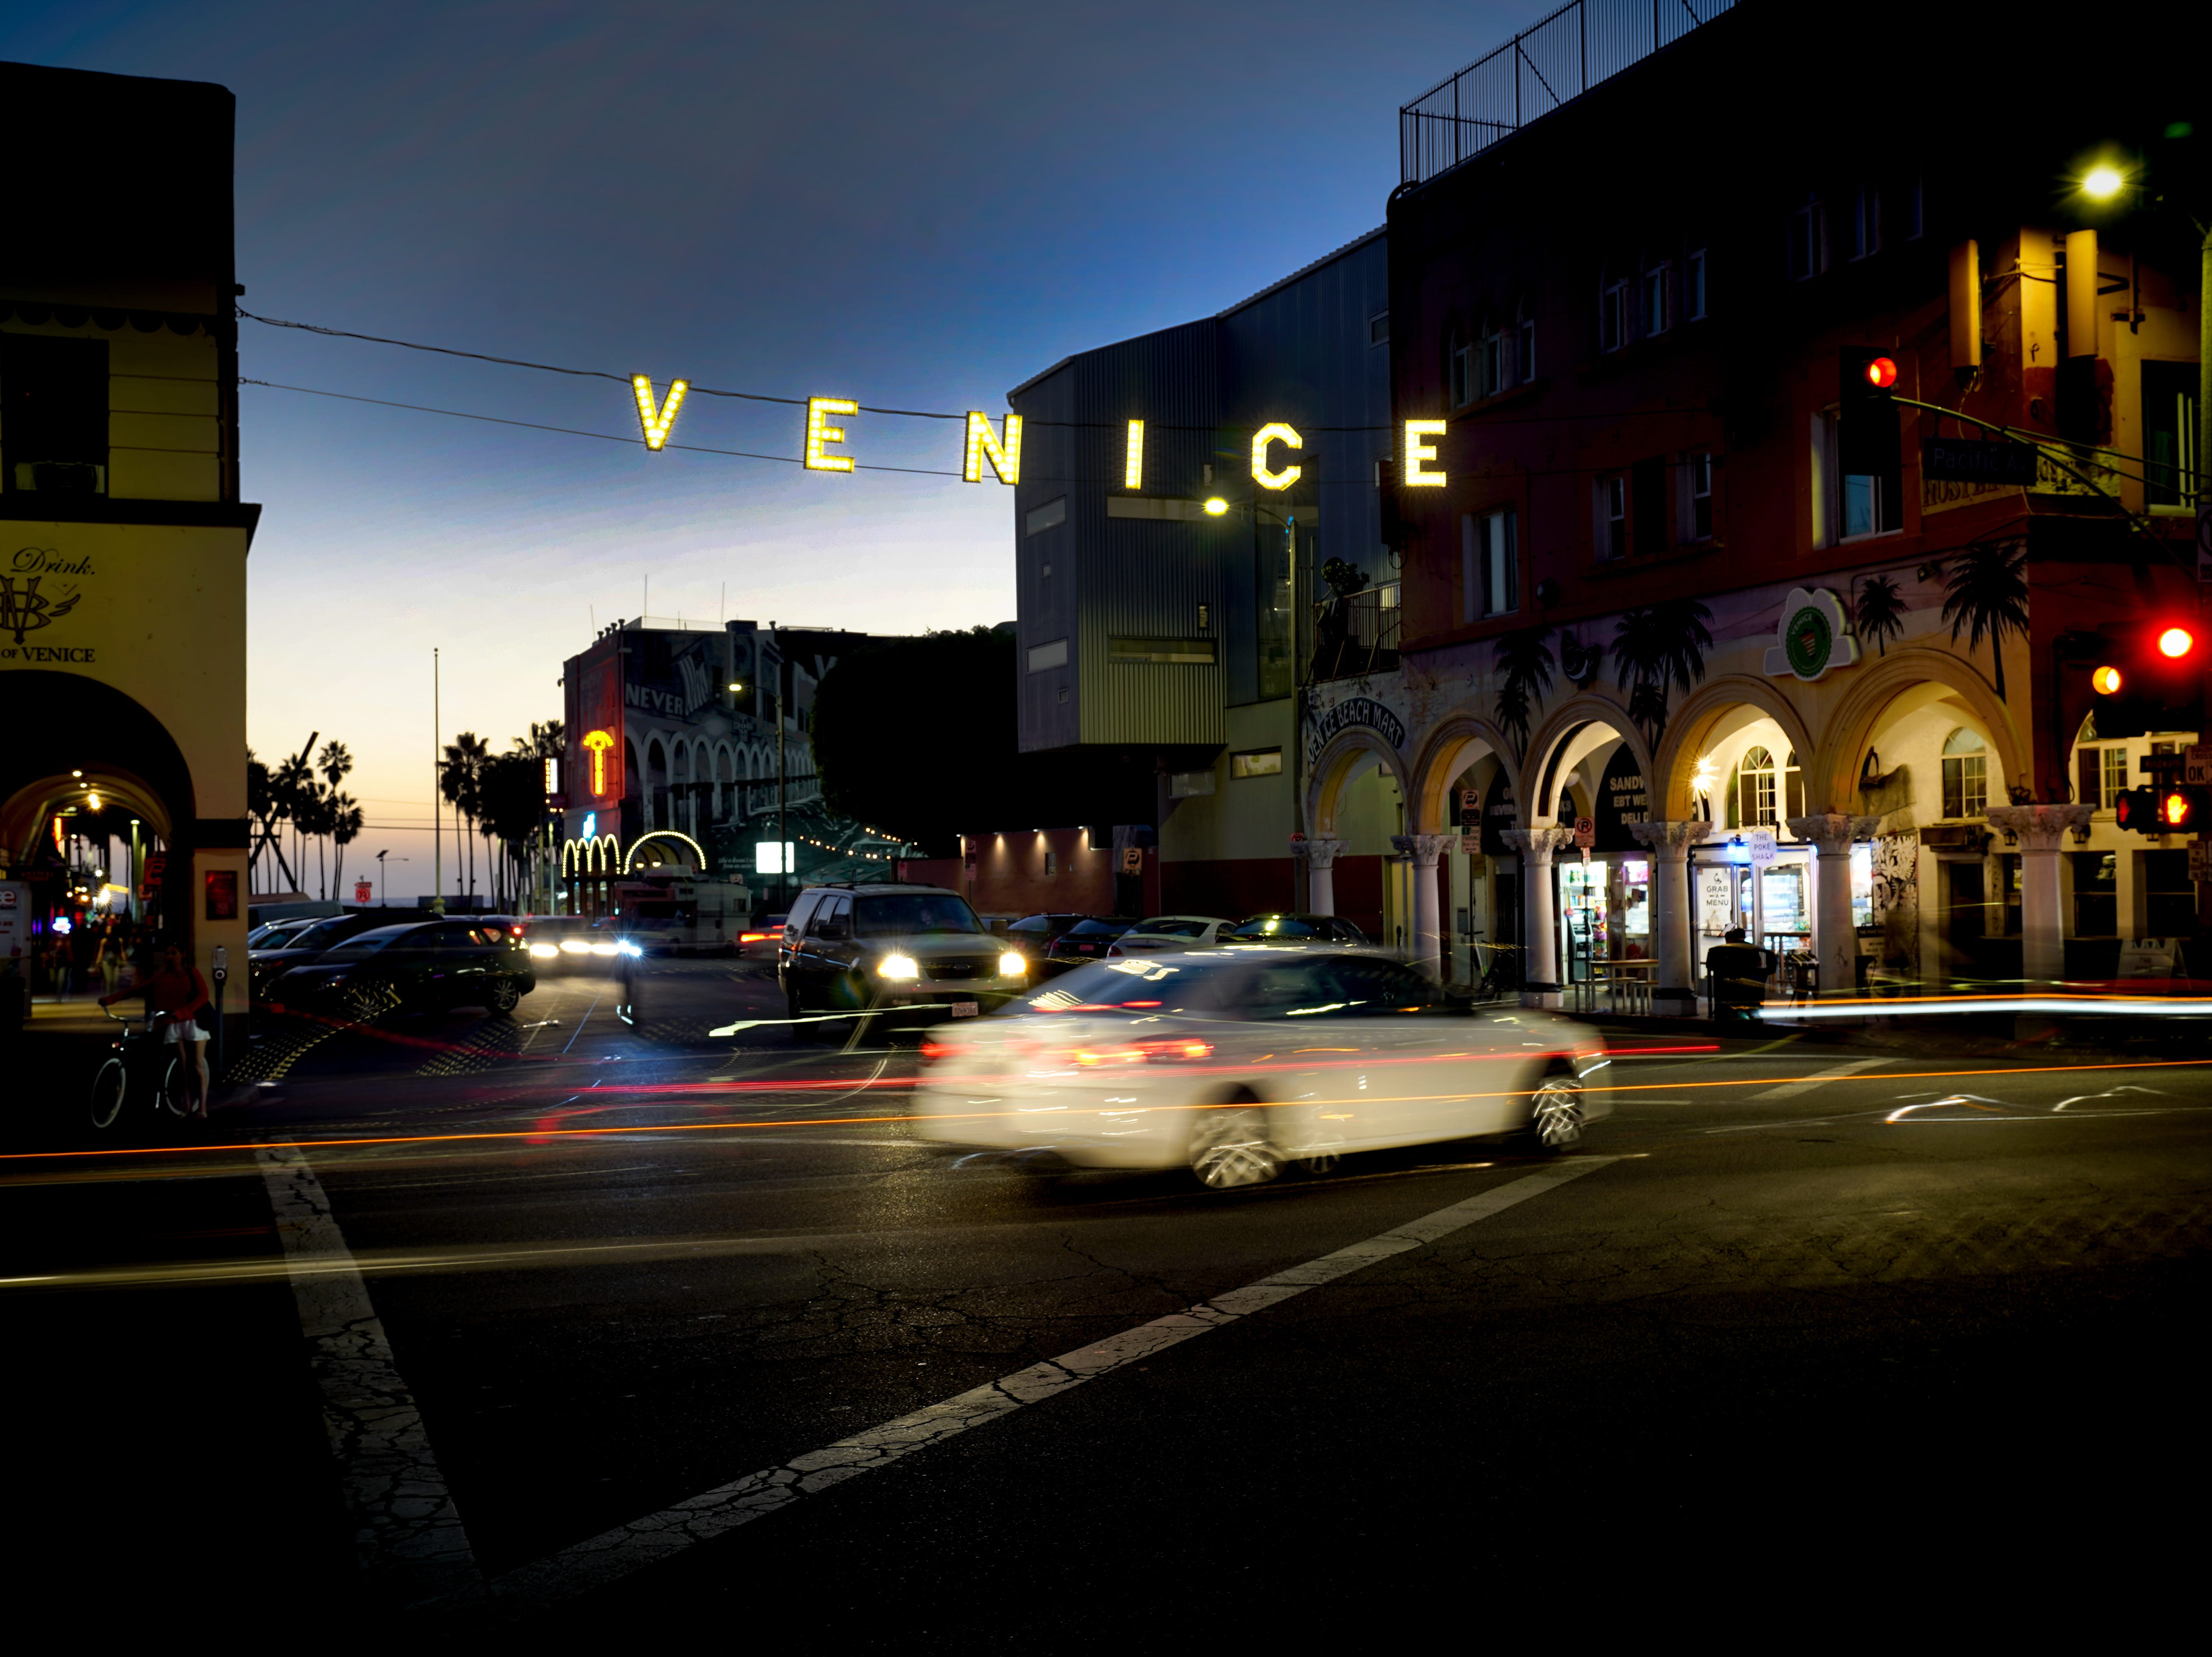 First stop: Venice Beach, just 6.4 miles from the airport. This is the corner of Windward Avenue and Pacific.